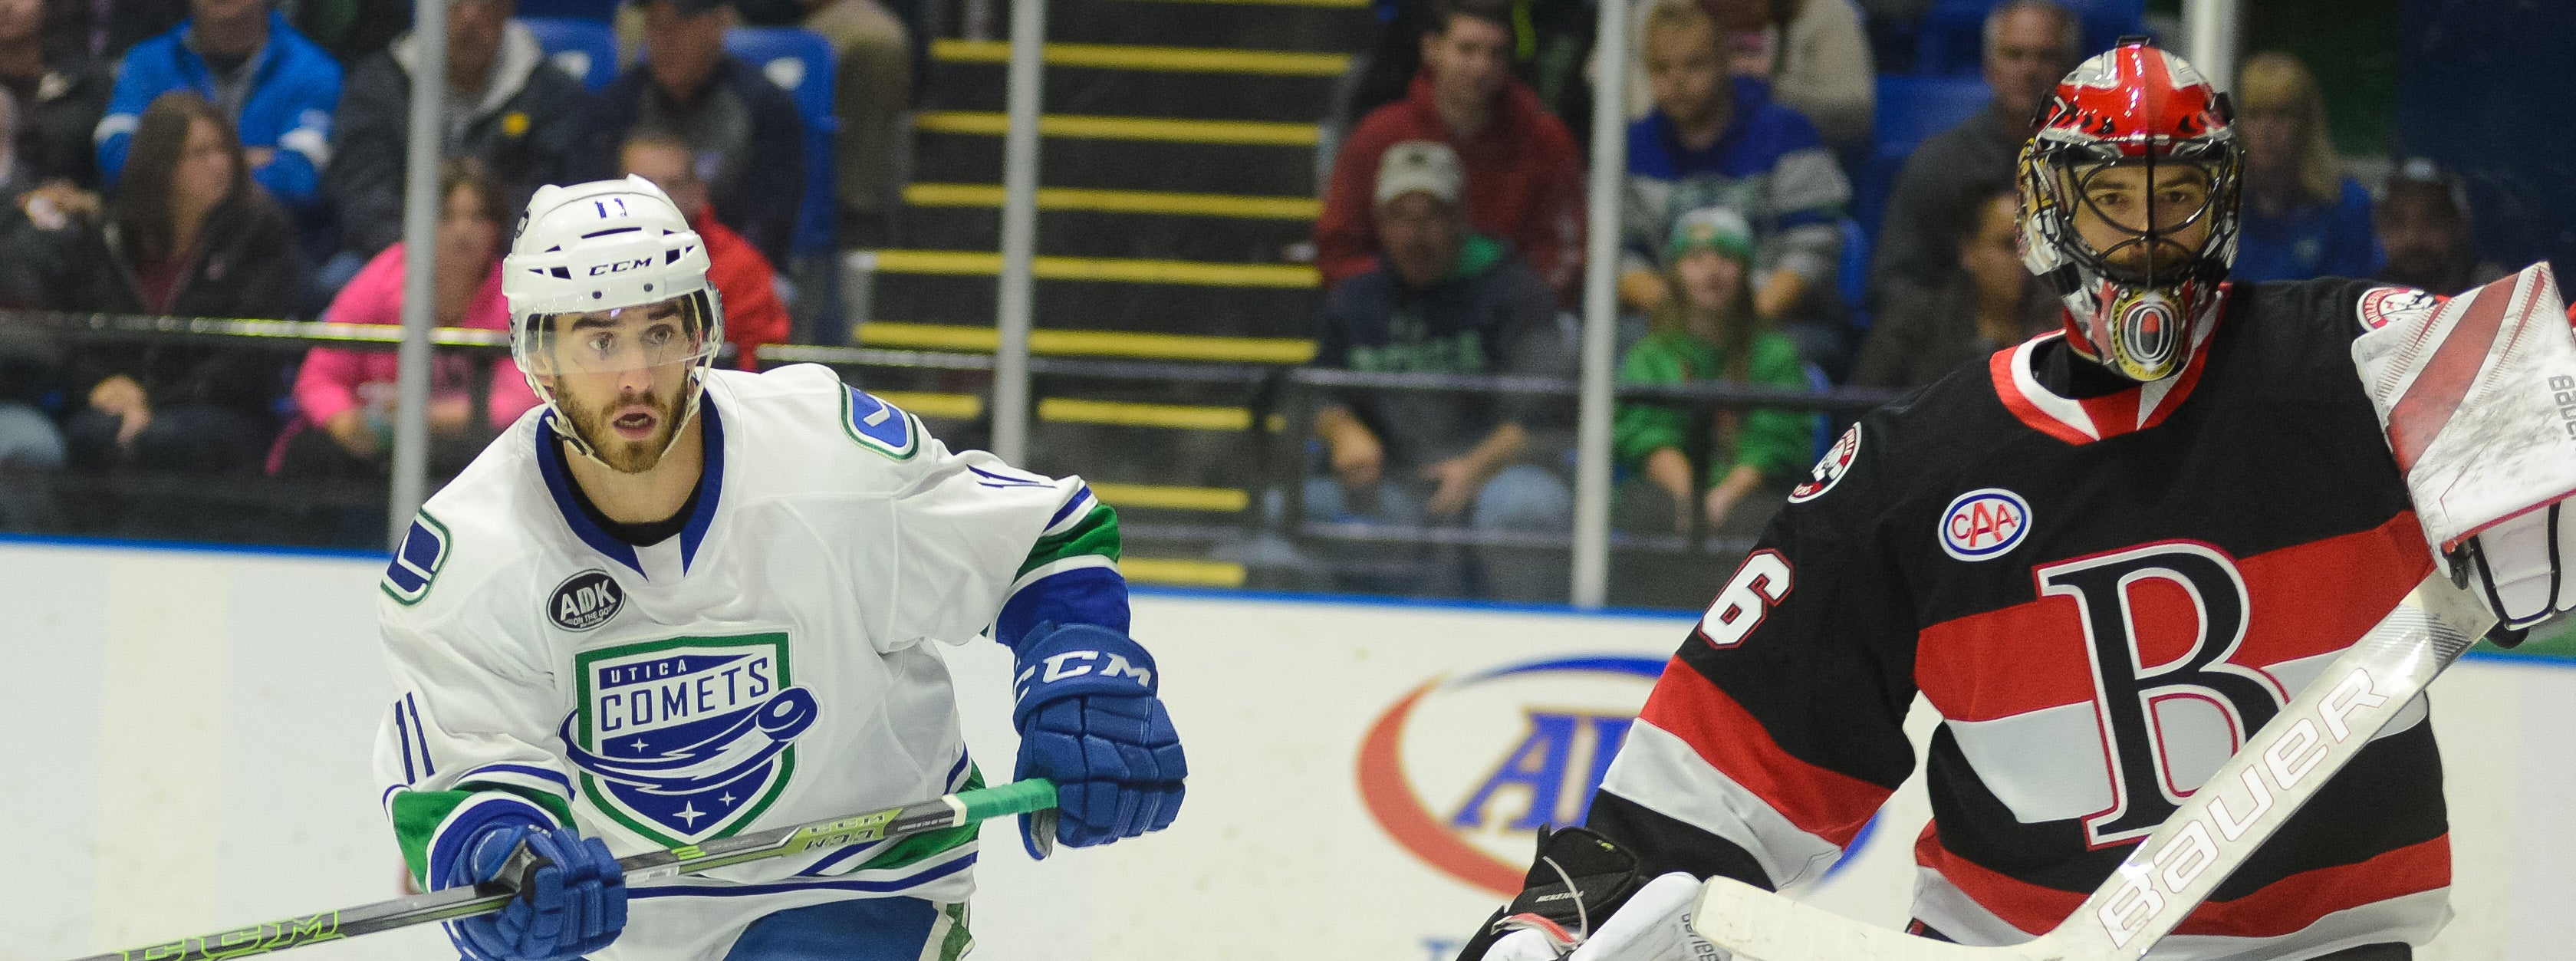 COMETS GO FOR THIRD STRAIGHT WIN AGAINST BELLEVILLE